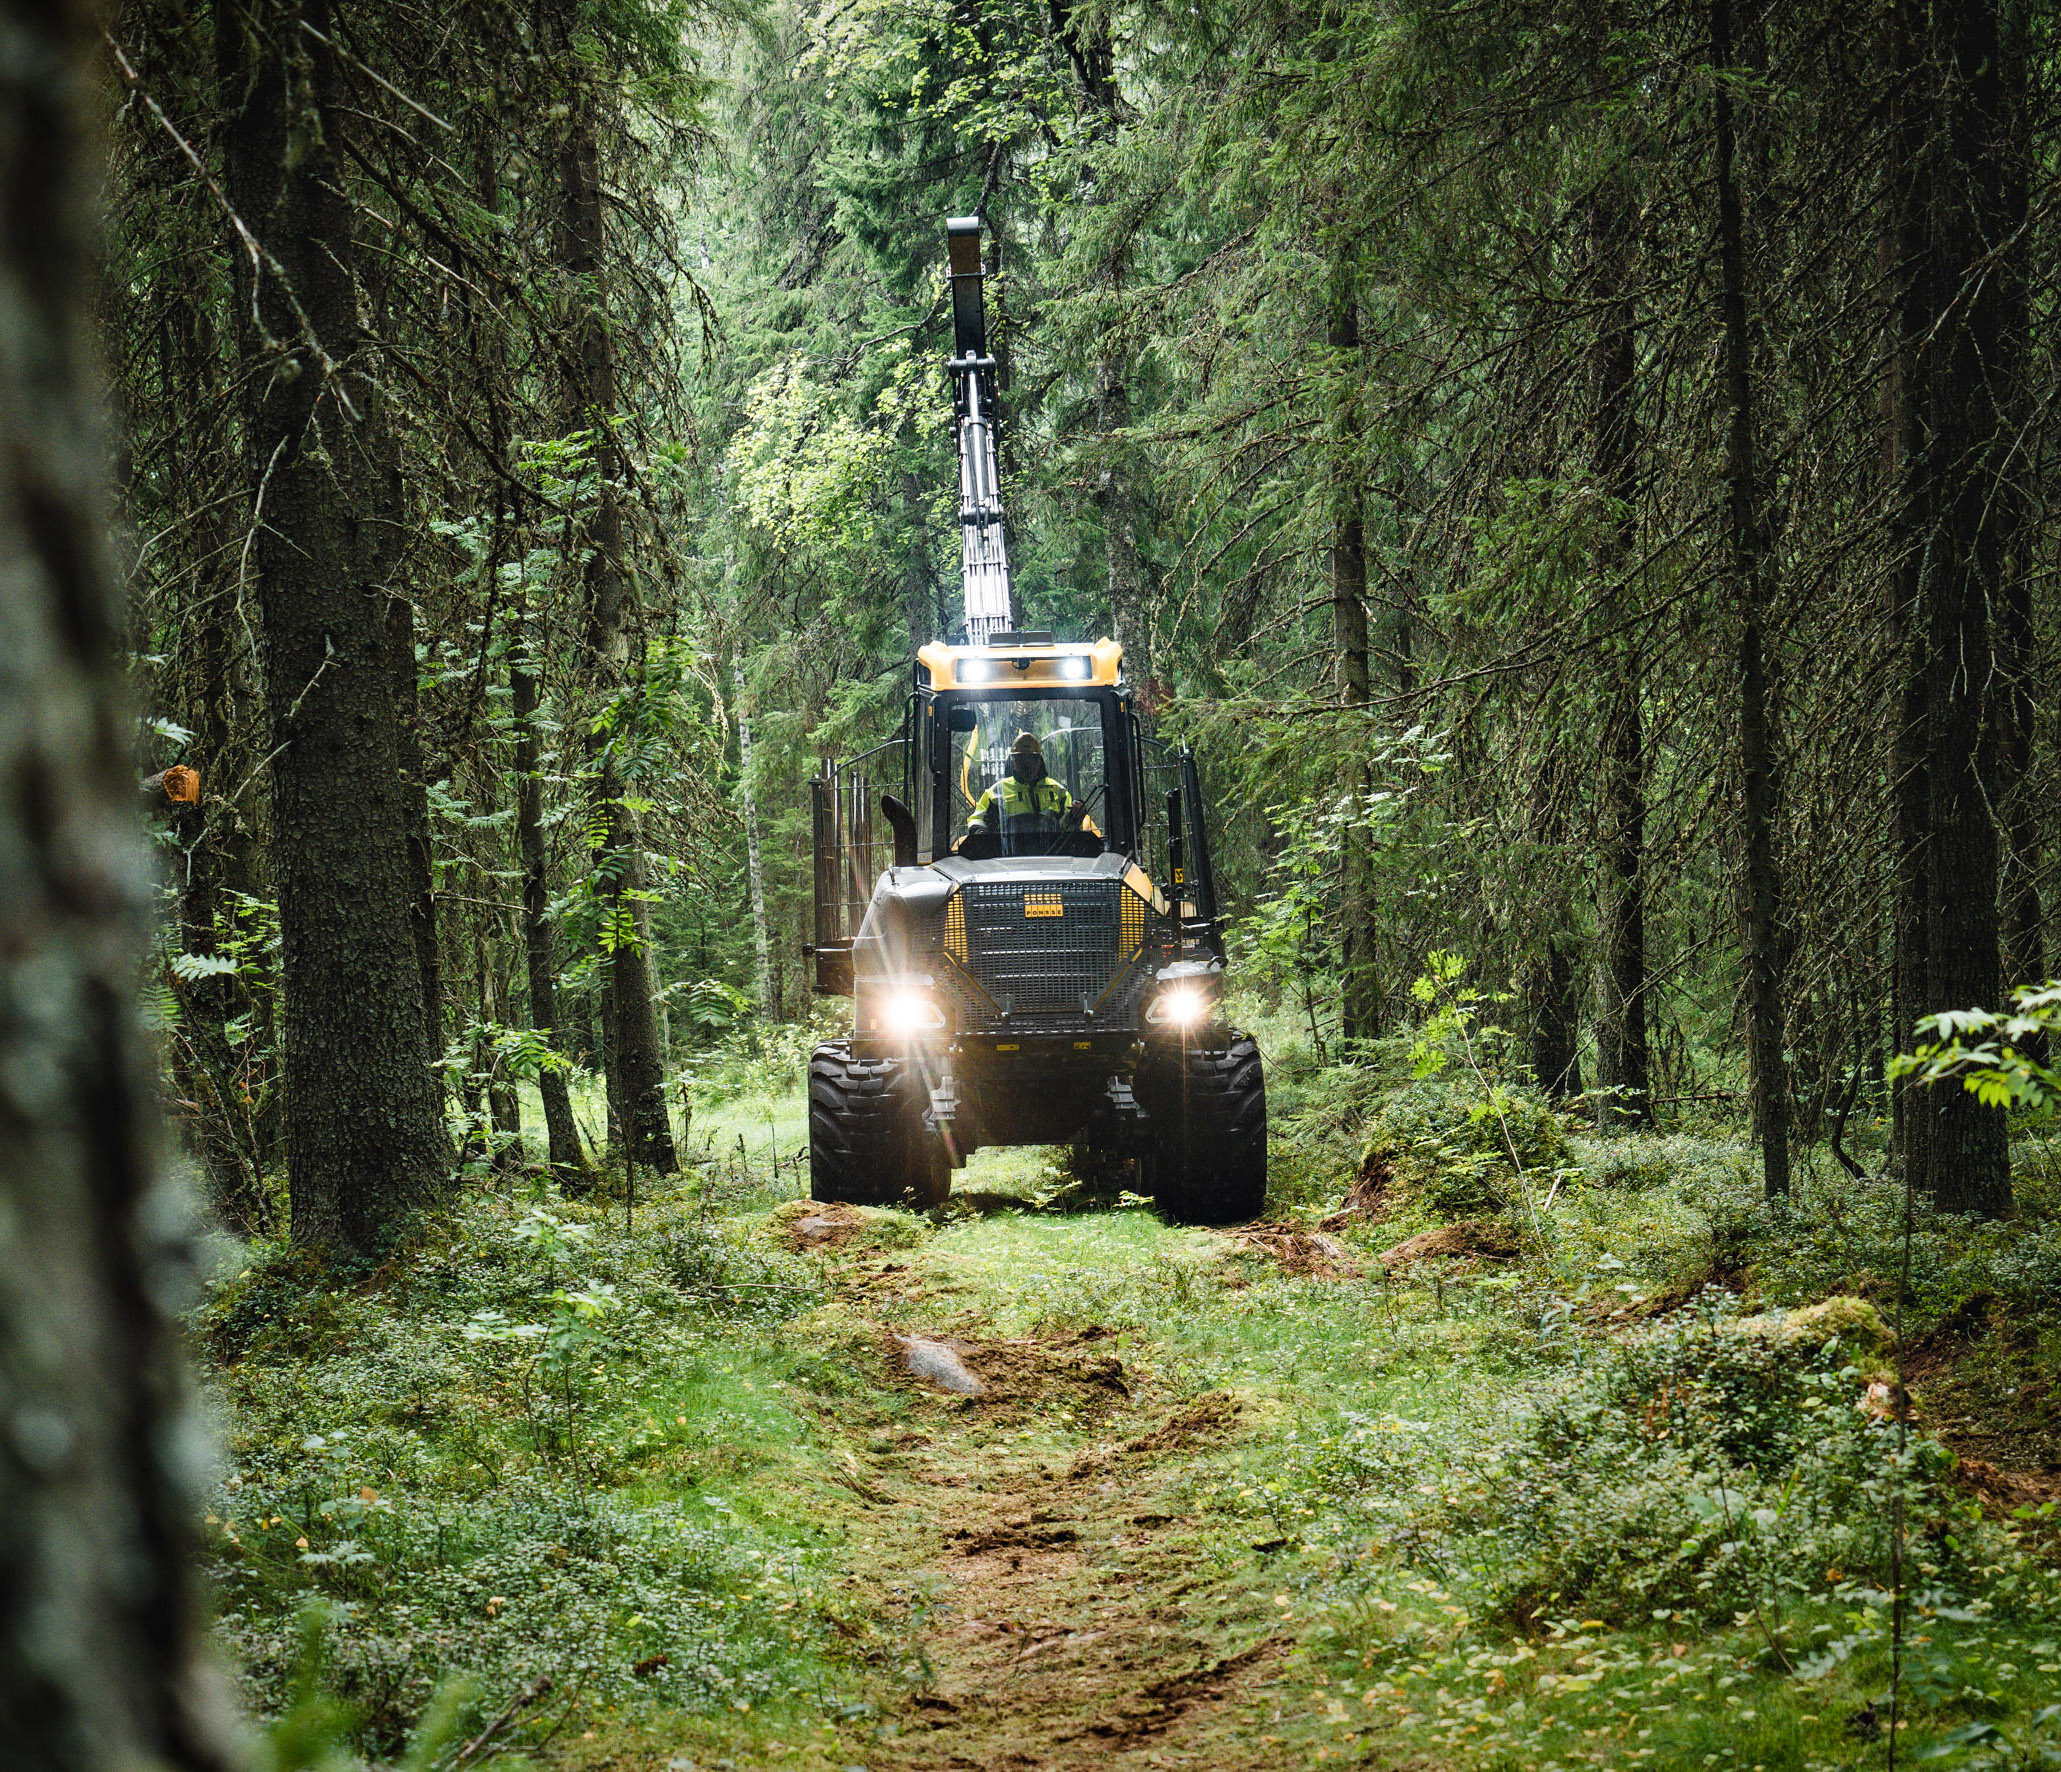 Why to partner with Ponsse? - Ponsse is one of the world's leading manufacturers of forest machines for the cut-to-length method. The company's shares are quoted on the NASDAQ OMX, but it's a family company whose roots are deep in the Finnish countryside. Get to know Ponsse better at https://www.ponsse.com/